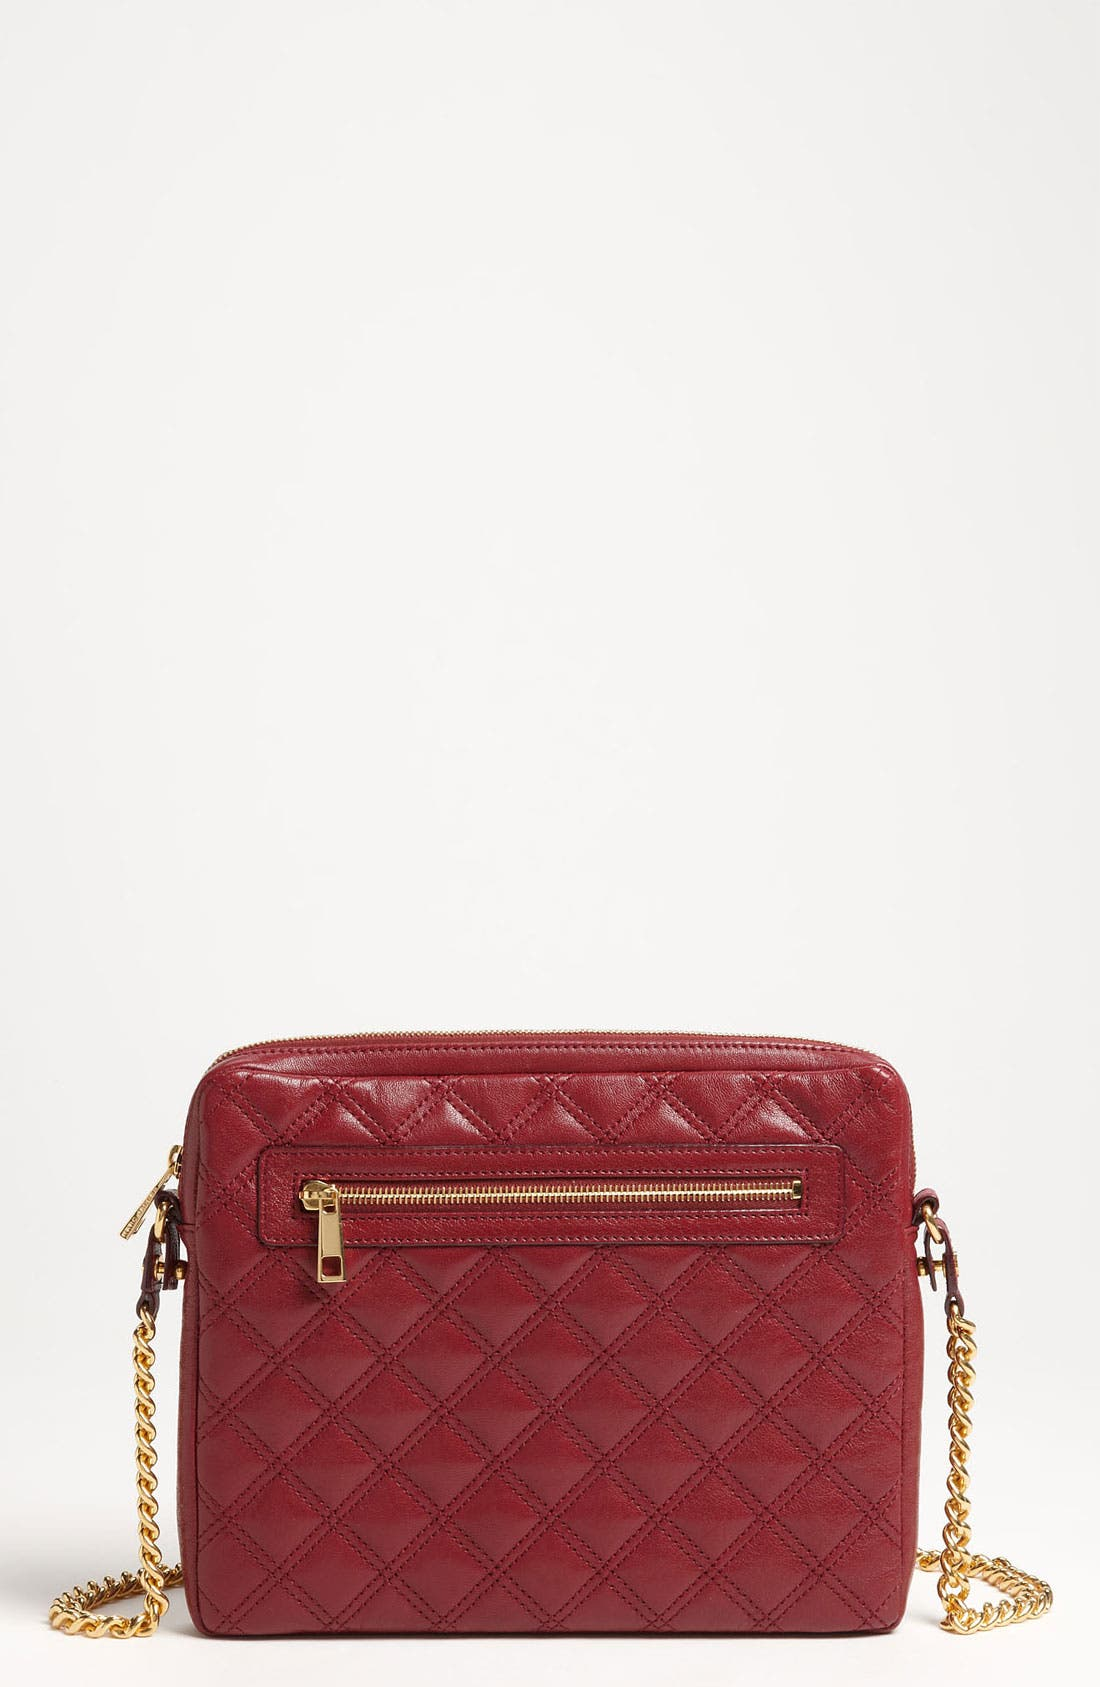 Main Image - MARC JACOBS 'Quilting - iPad' Crossbody Bag